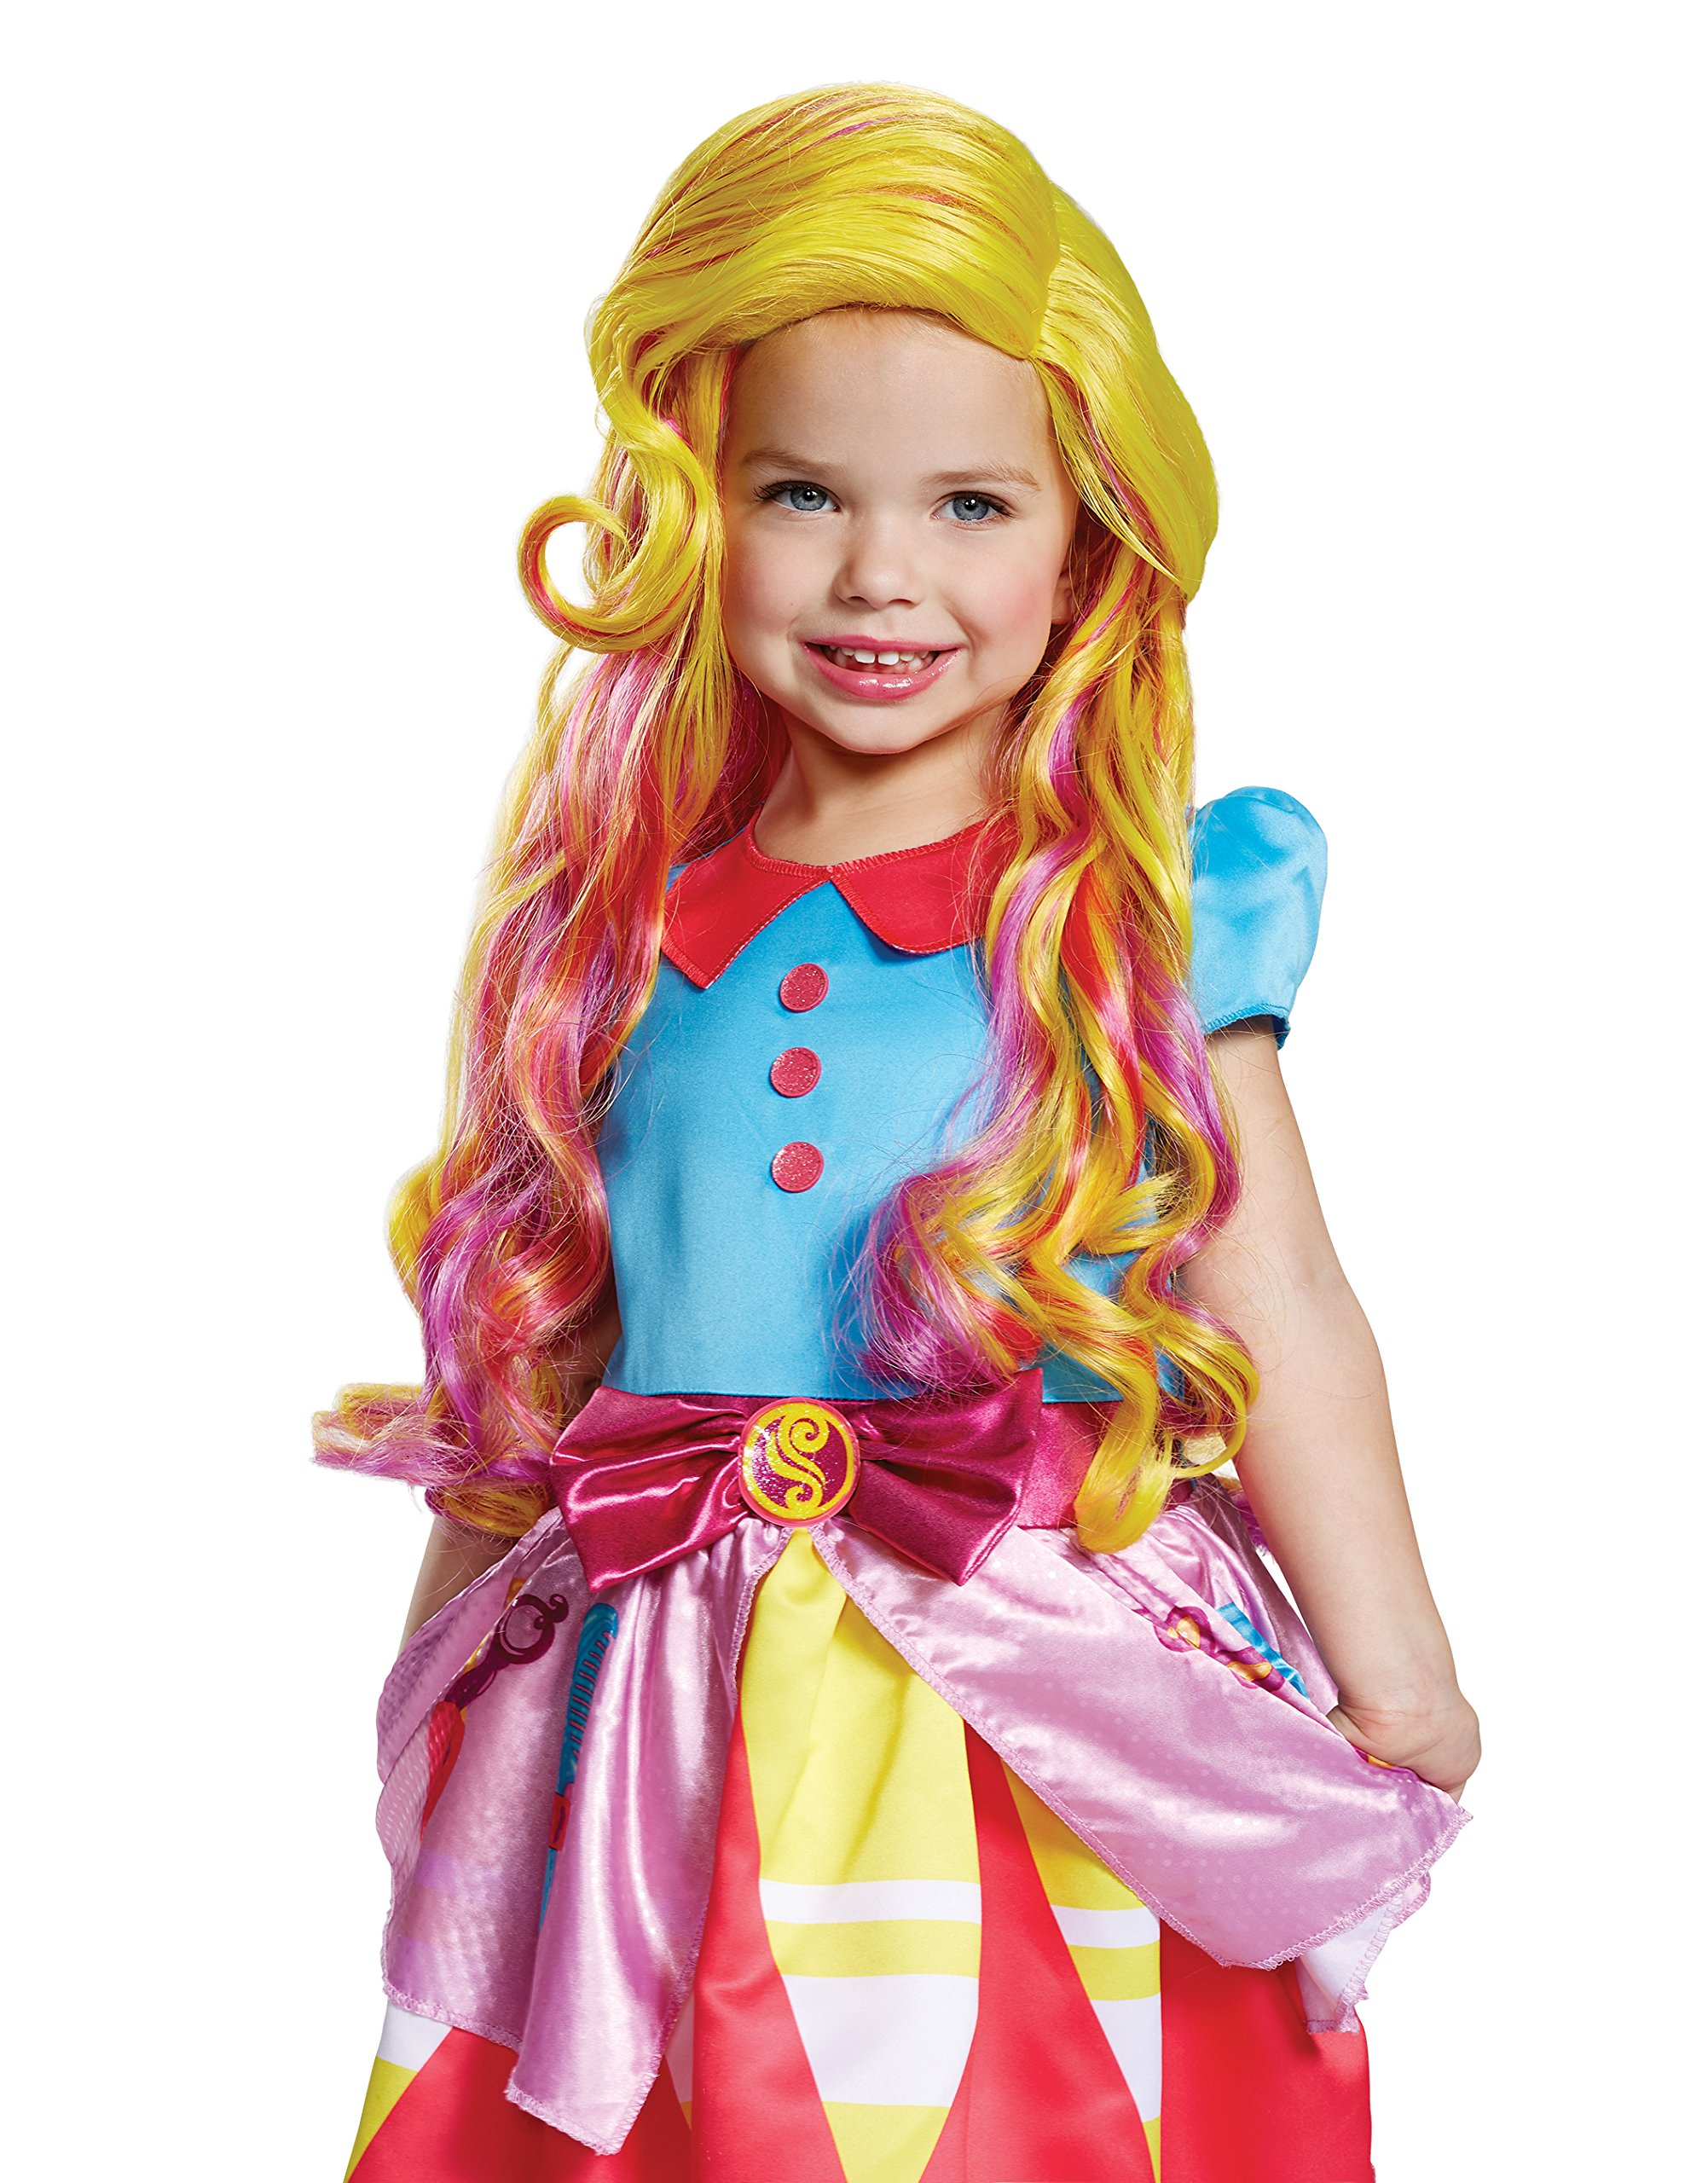 Disguise Sunny Child  Costume Wig, One Size Child by Disguise